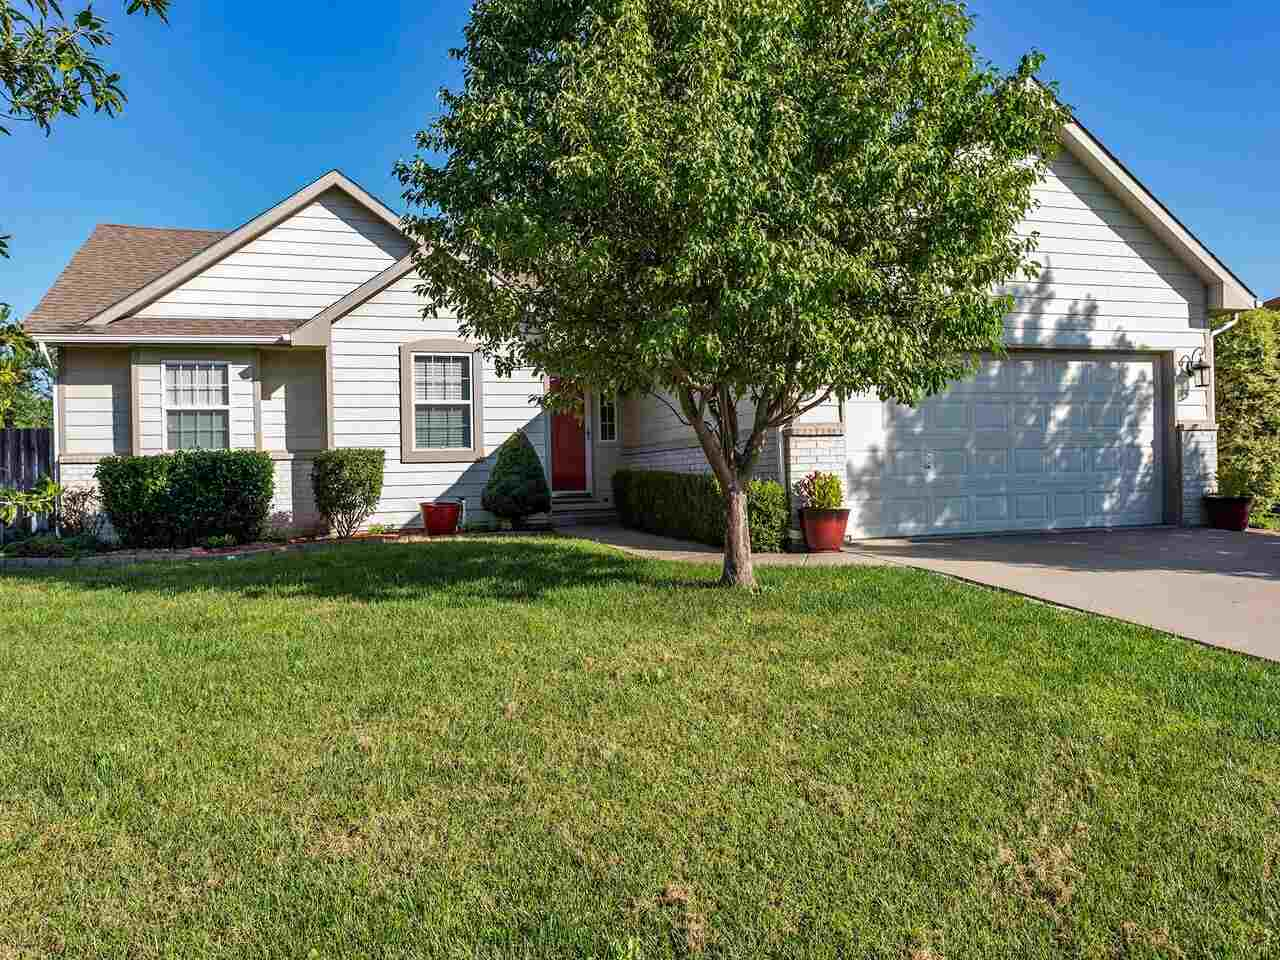 Exactly what you are looking for!  Great neighborhood*Ranch plan with 3 bedrooms and 2 baths on main